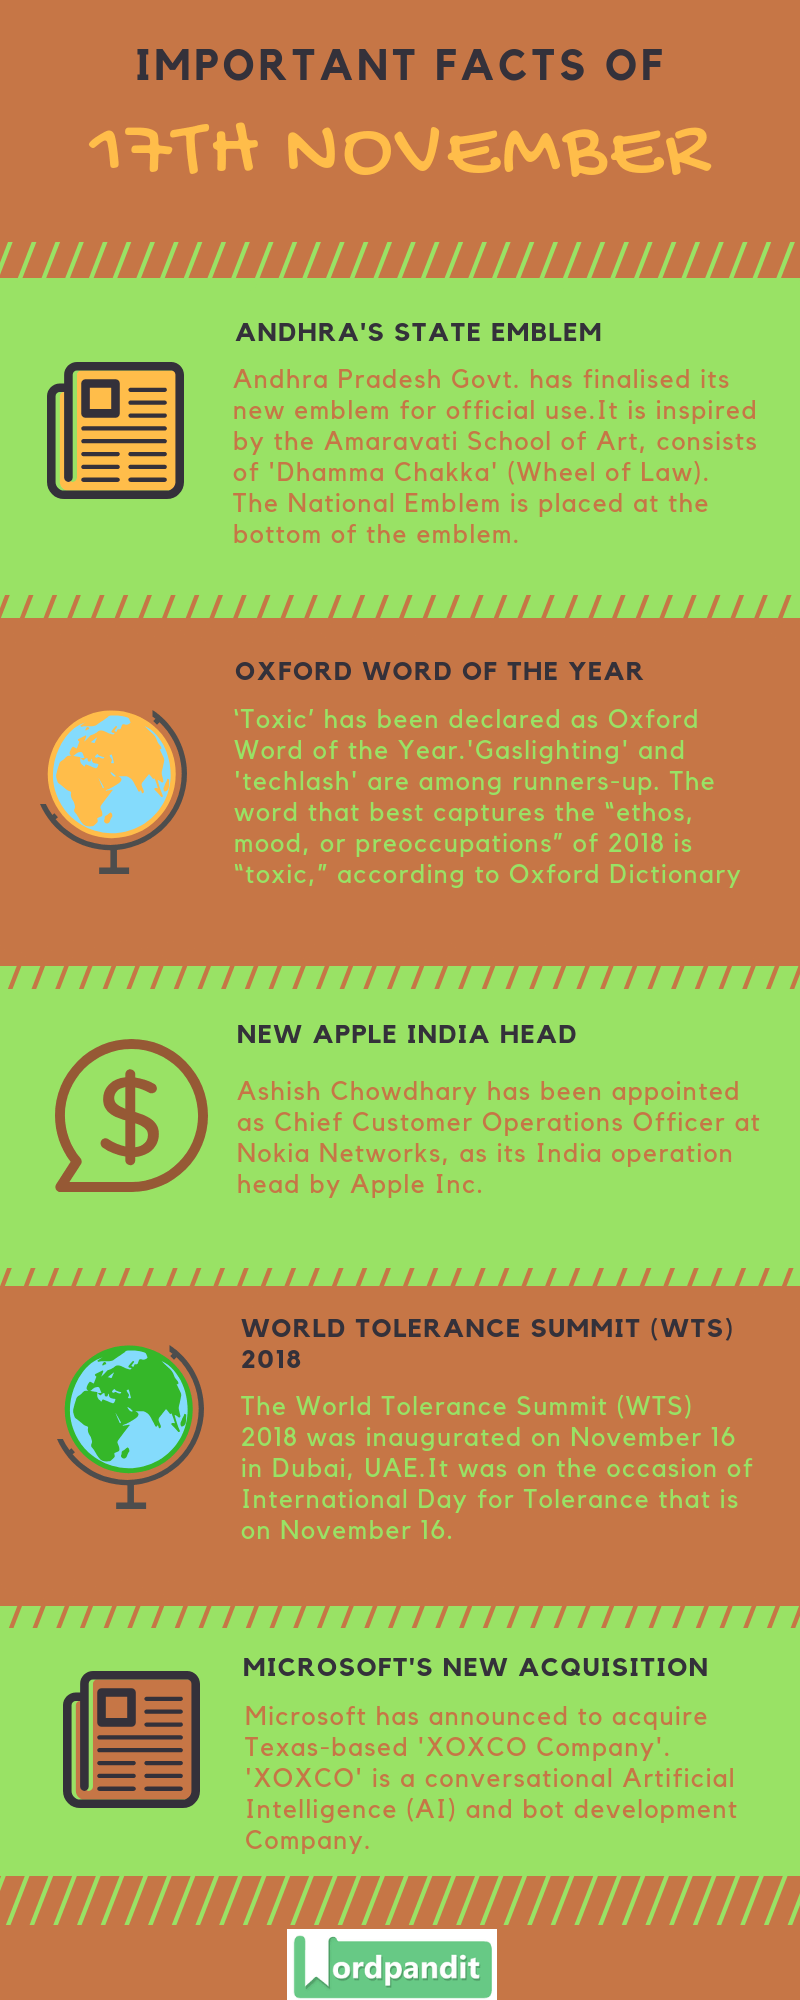 Daily Current Affairs 17 November 2018 Current Affairs Quiz 17 November 2018 Current Affairs Infographic